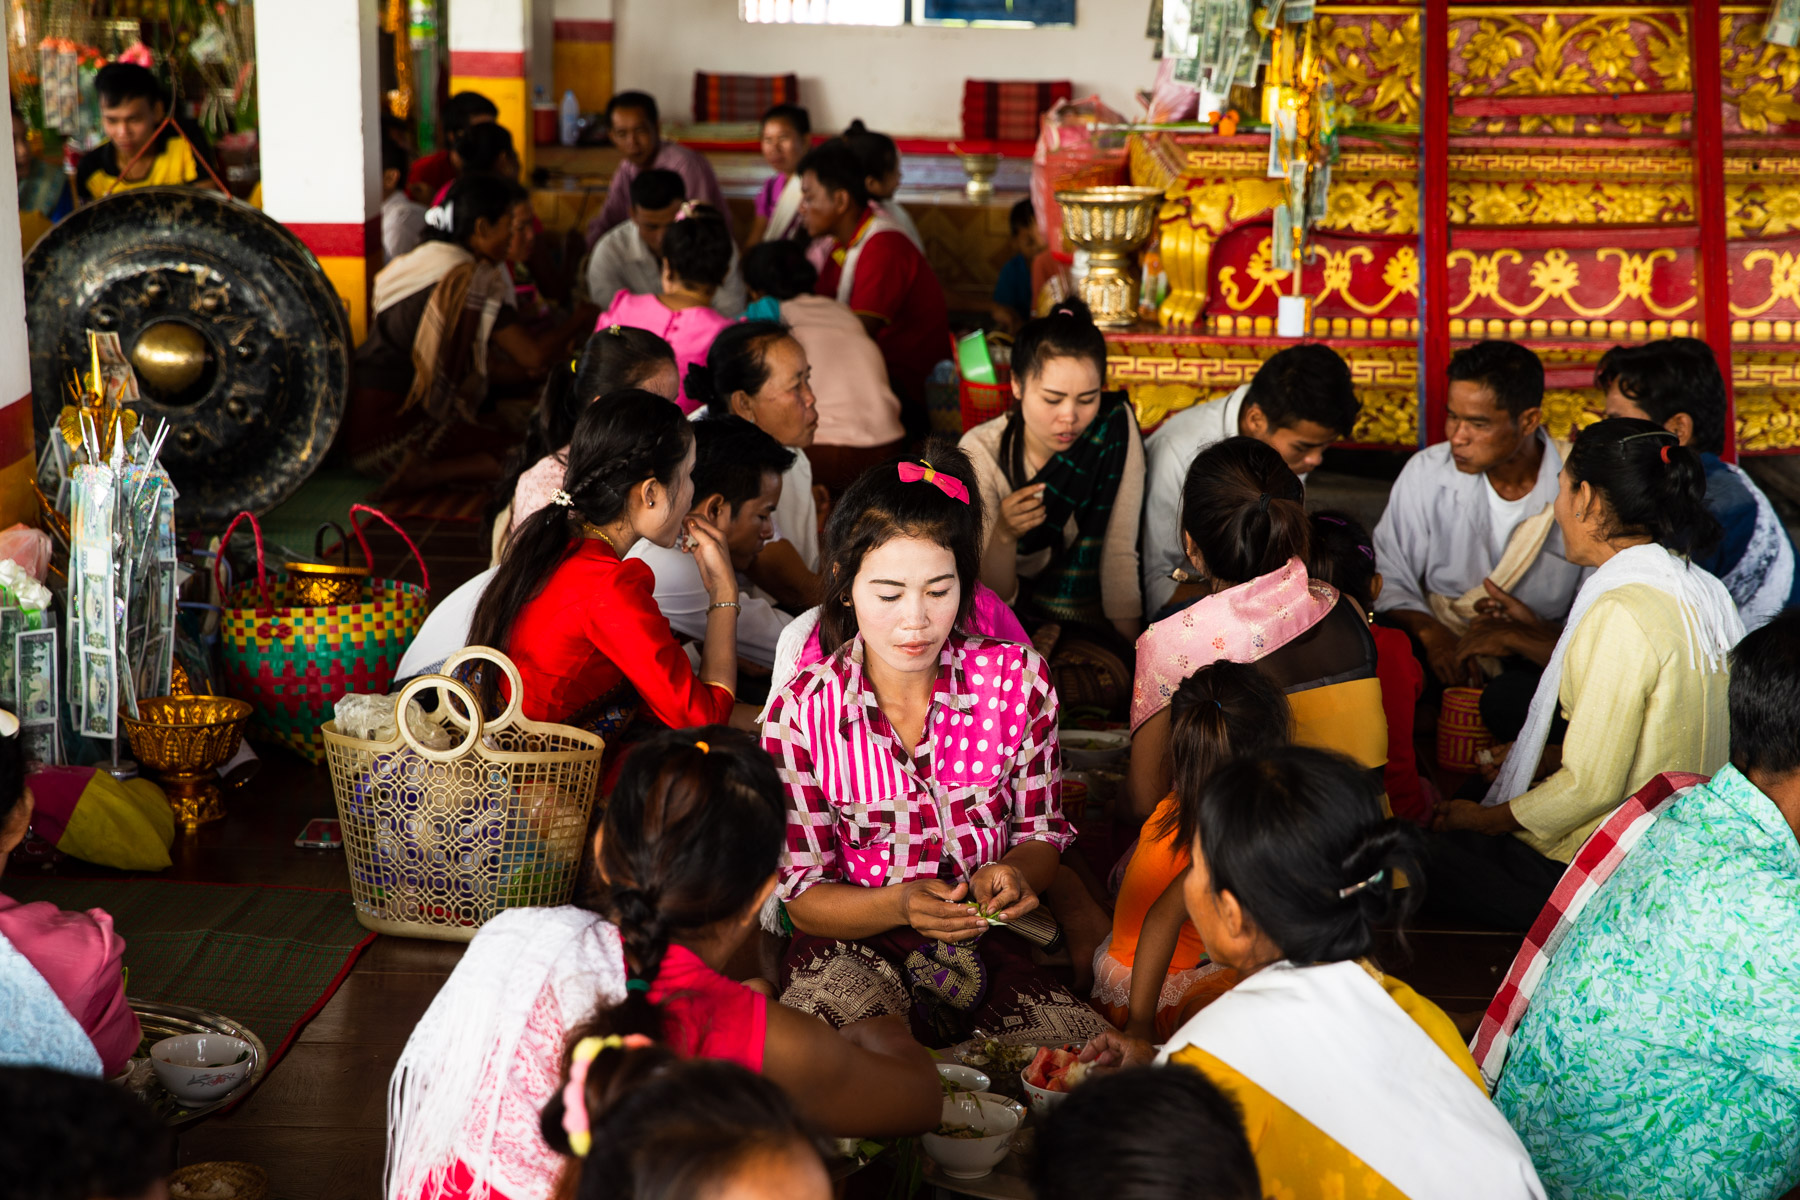 People getting ready at Temple ceremony